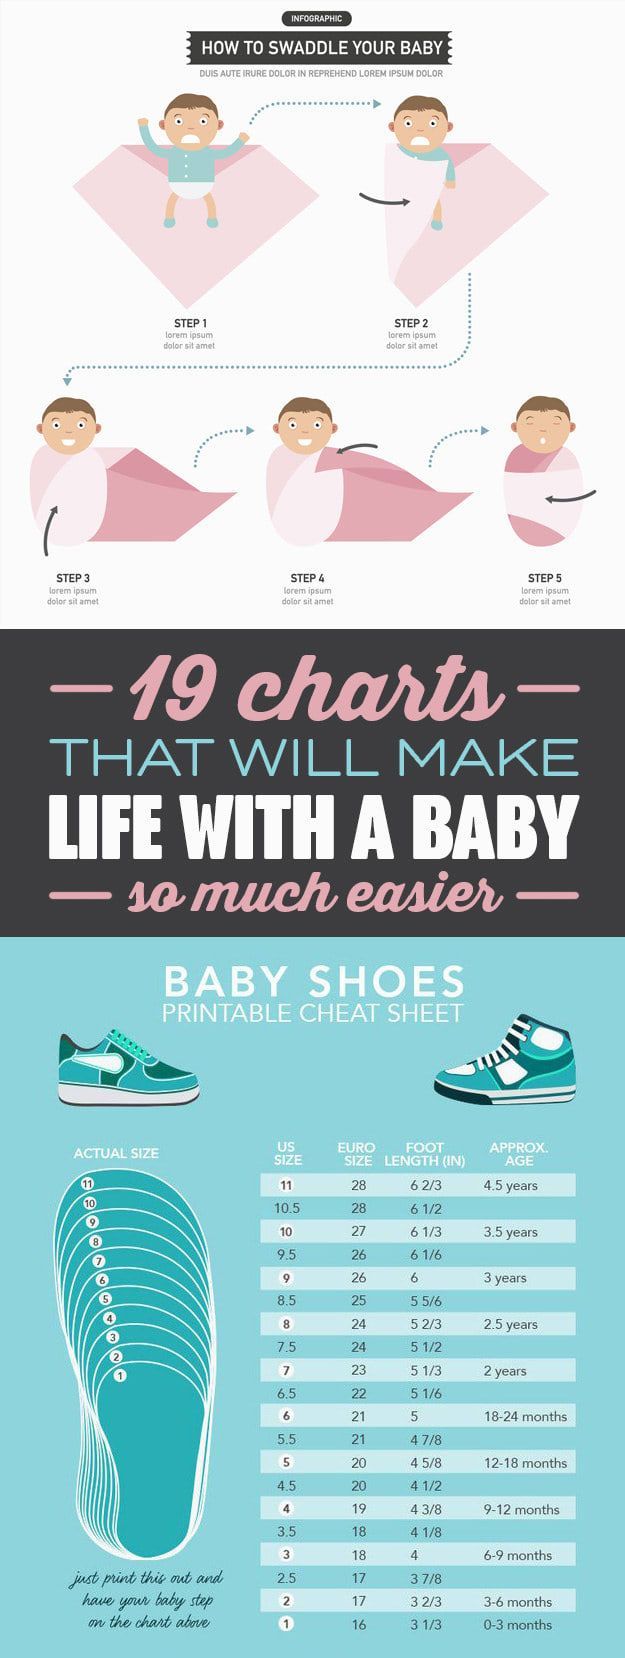 19 Charts That Will Make Life With A Baby So Much Easier